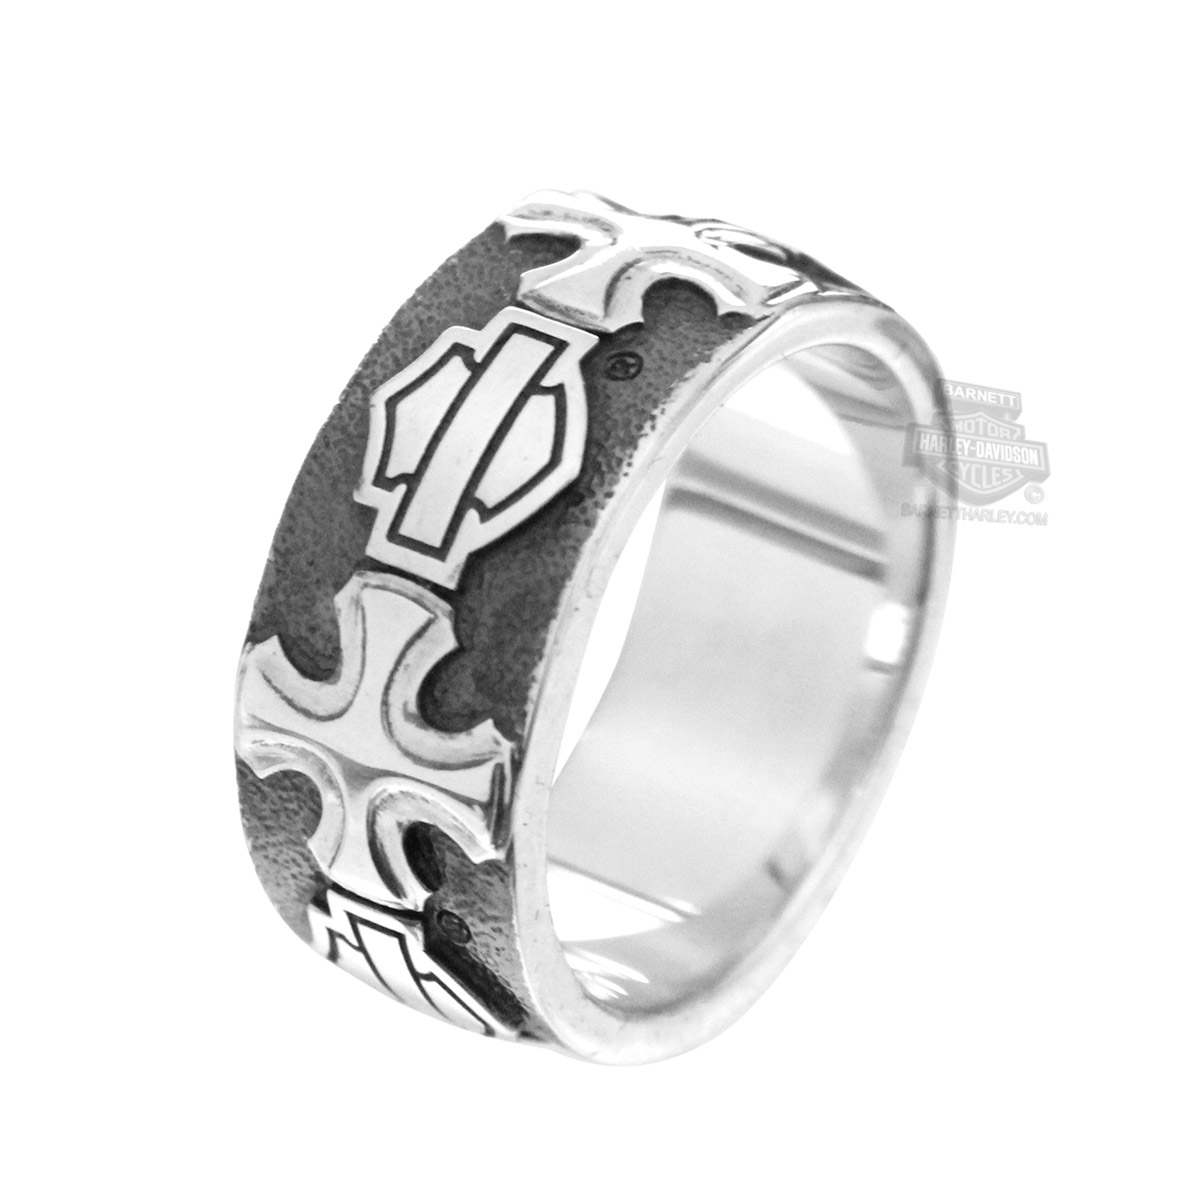 Harley DavidsonR Mens 925 Silver BS Cross Band Ring By Mod JewelryR